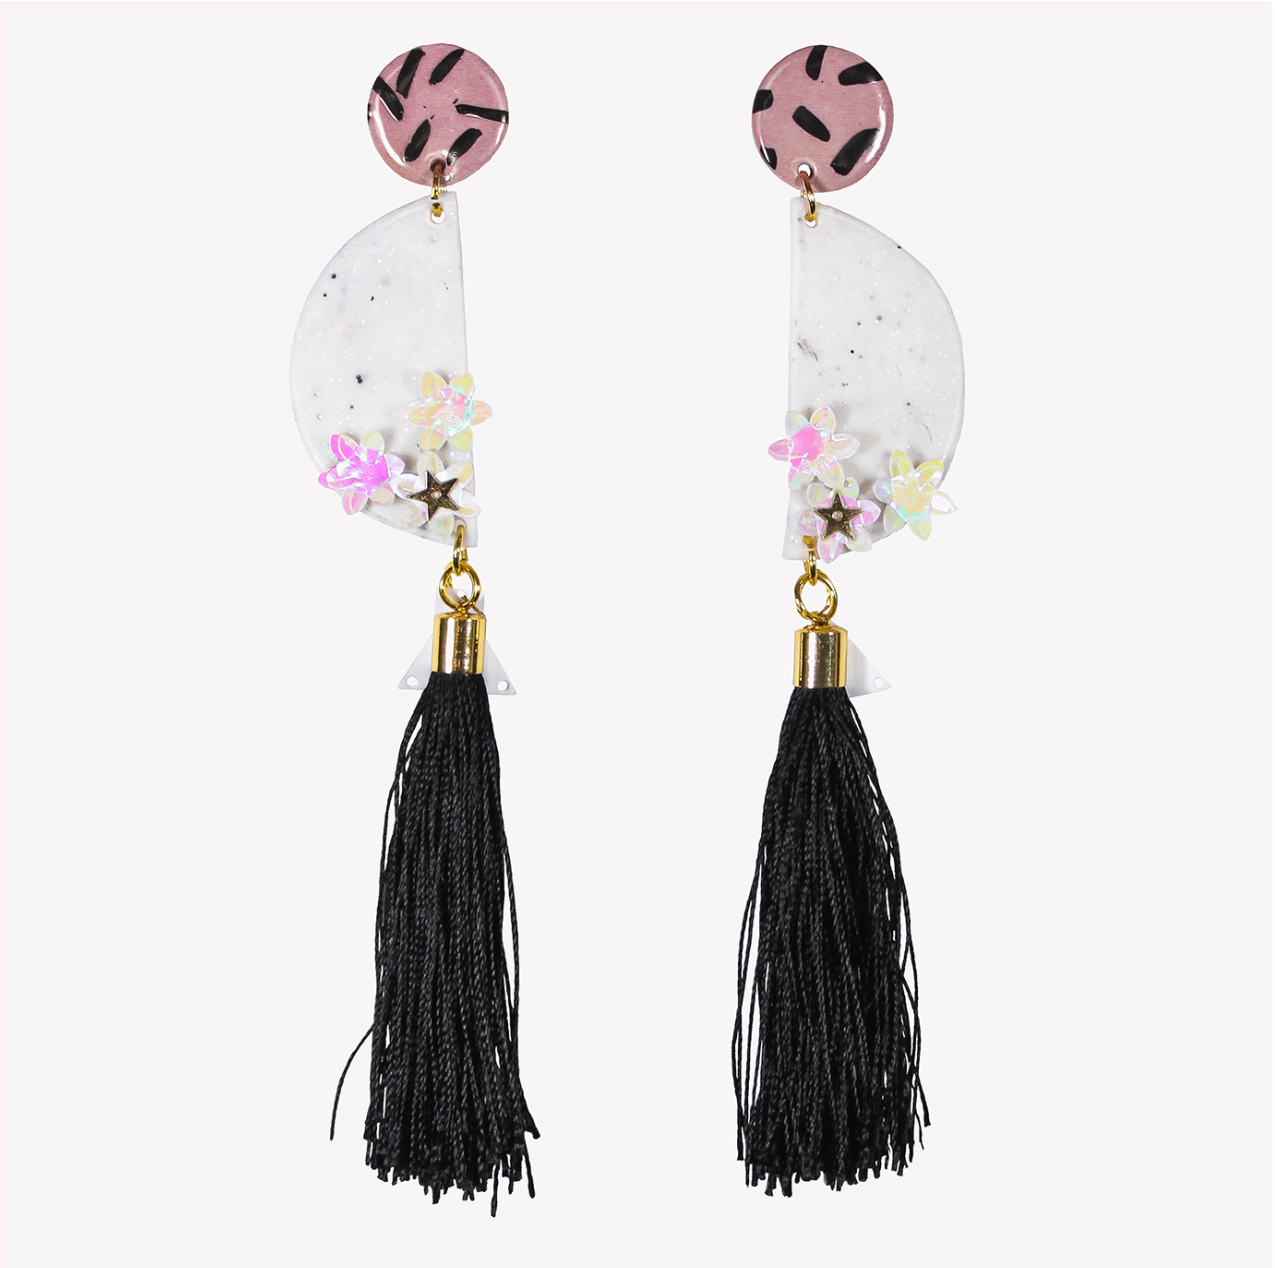 Long half circle earrings with black tassels and sequins